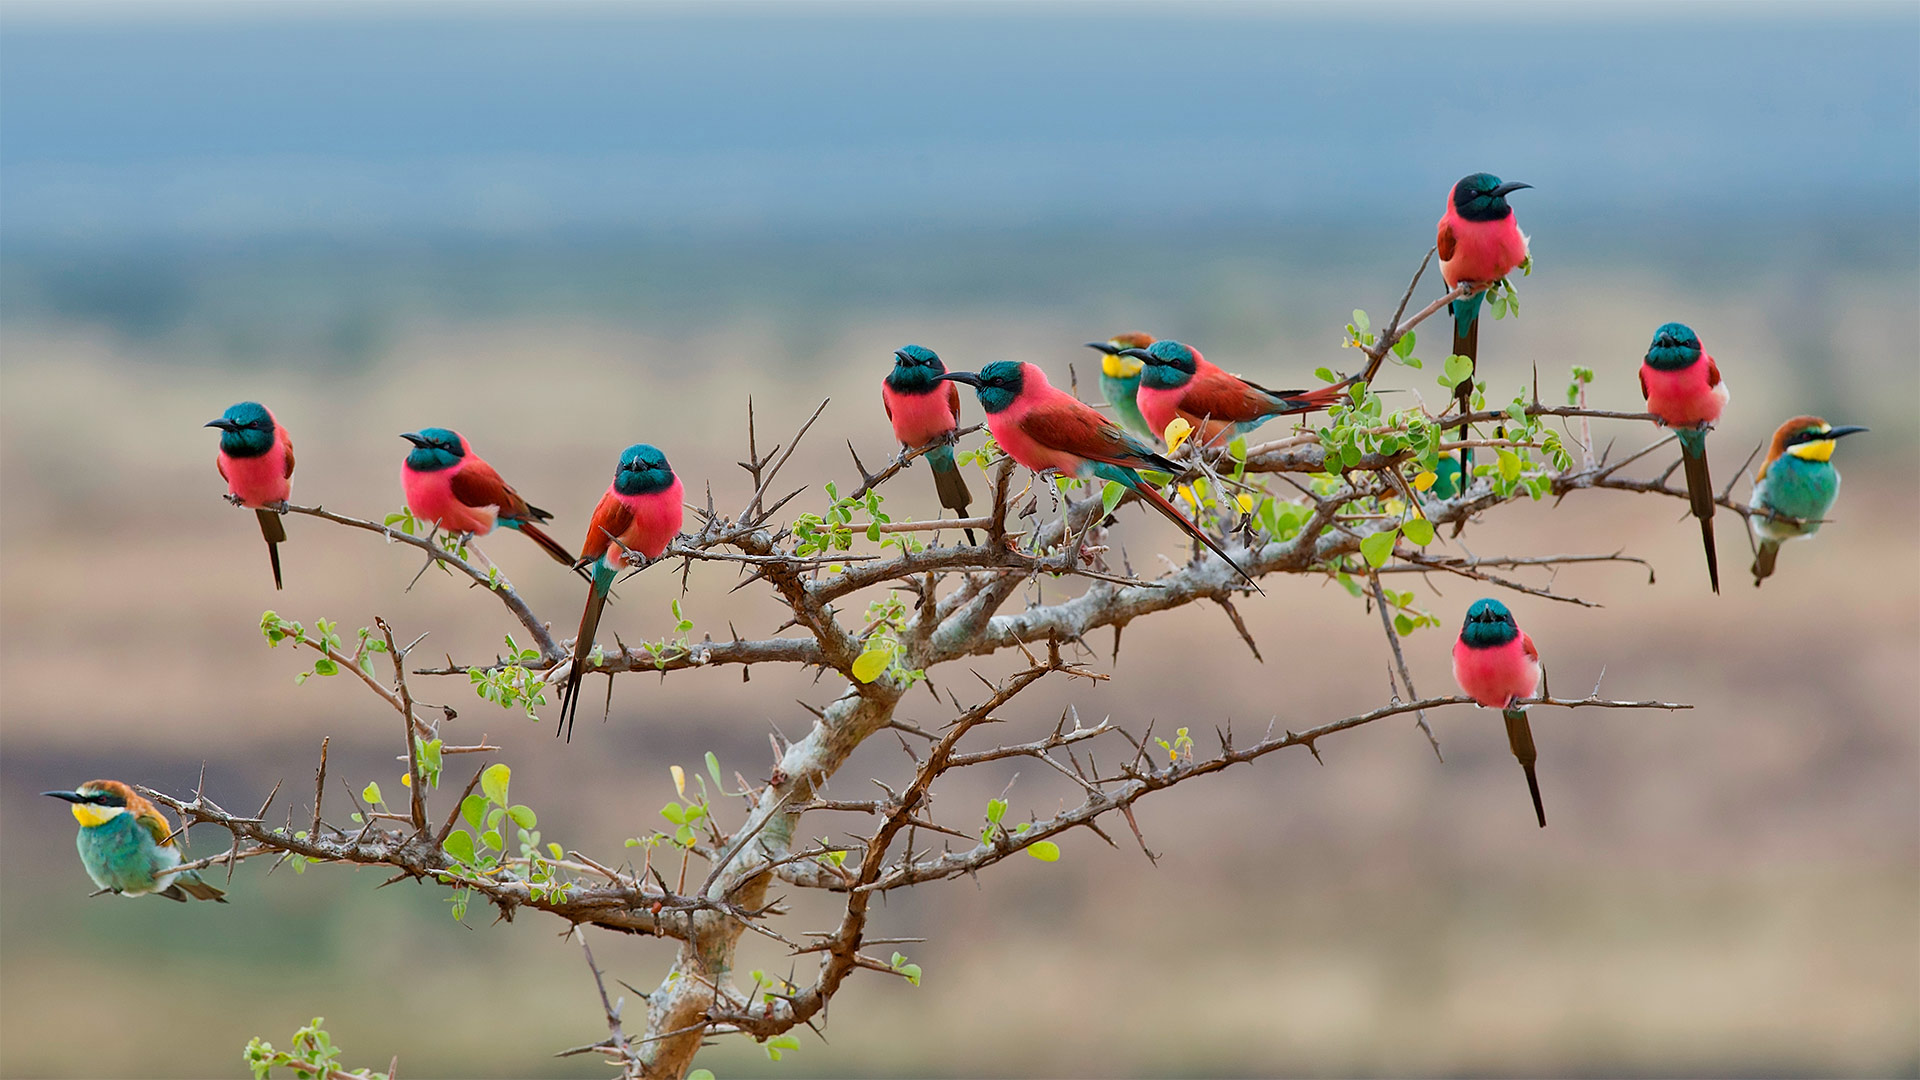 Northern carmine and European bee-eaters in Mkomazi National Park, Tanzania (© webguzs/Getty Images)(Bing United States)